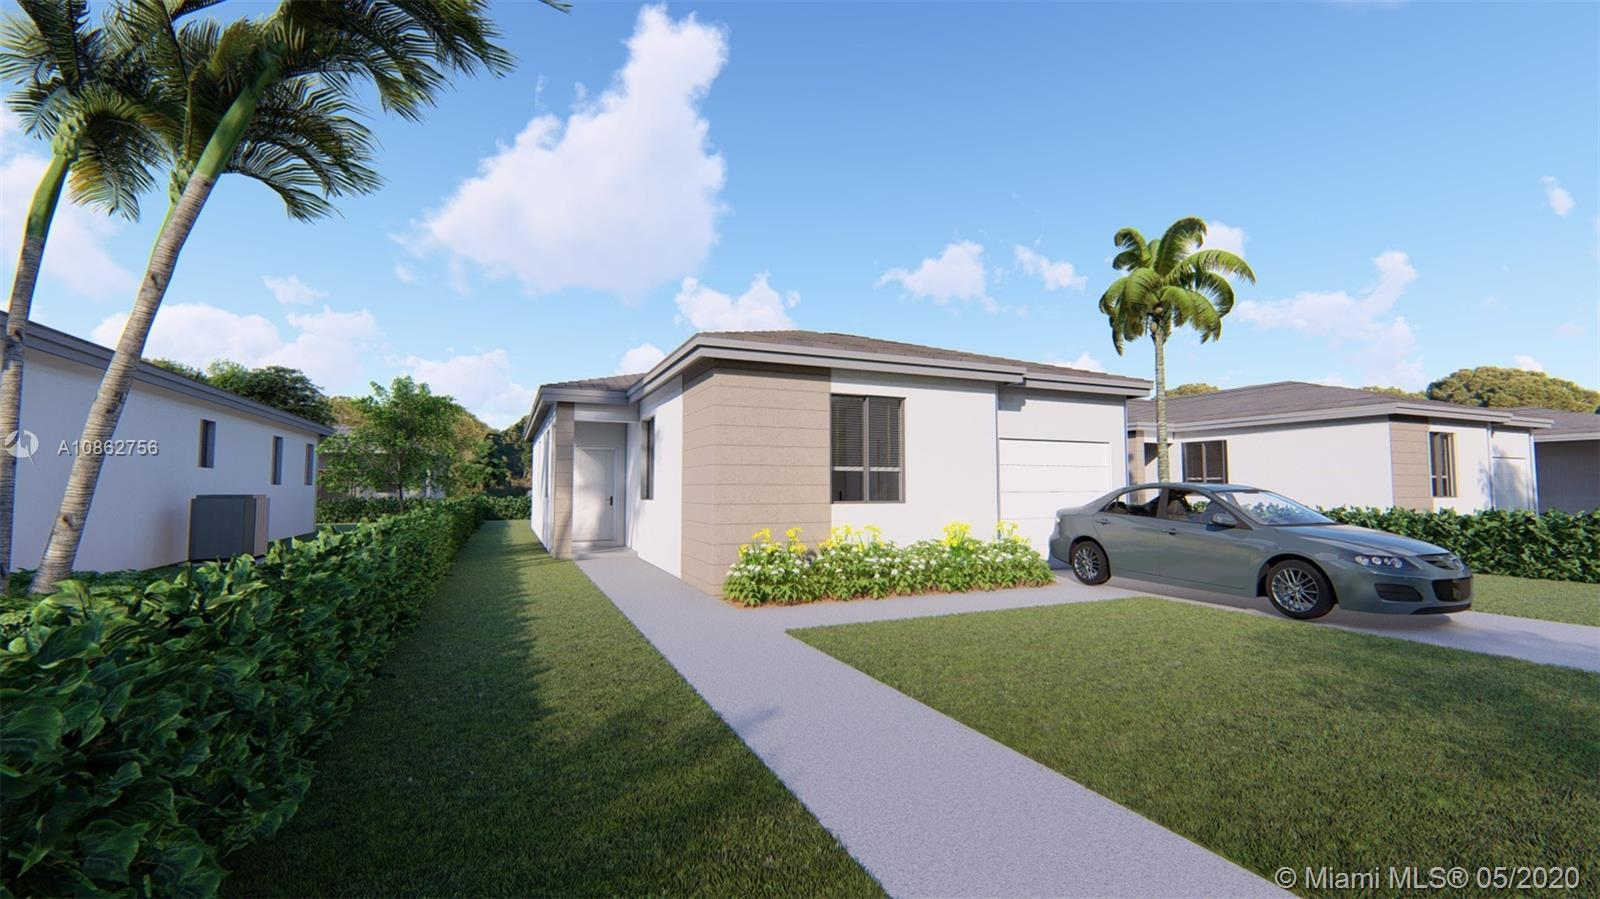 BE THE FIRST ONE TO MOVE INTO THIS AMAZING BRAND NEW CONSTRUCTION! 3 BEDROOMS 2 BATHS, ONE CAR GARAG